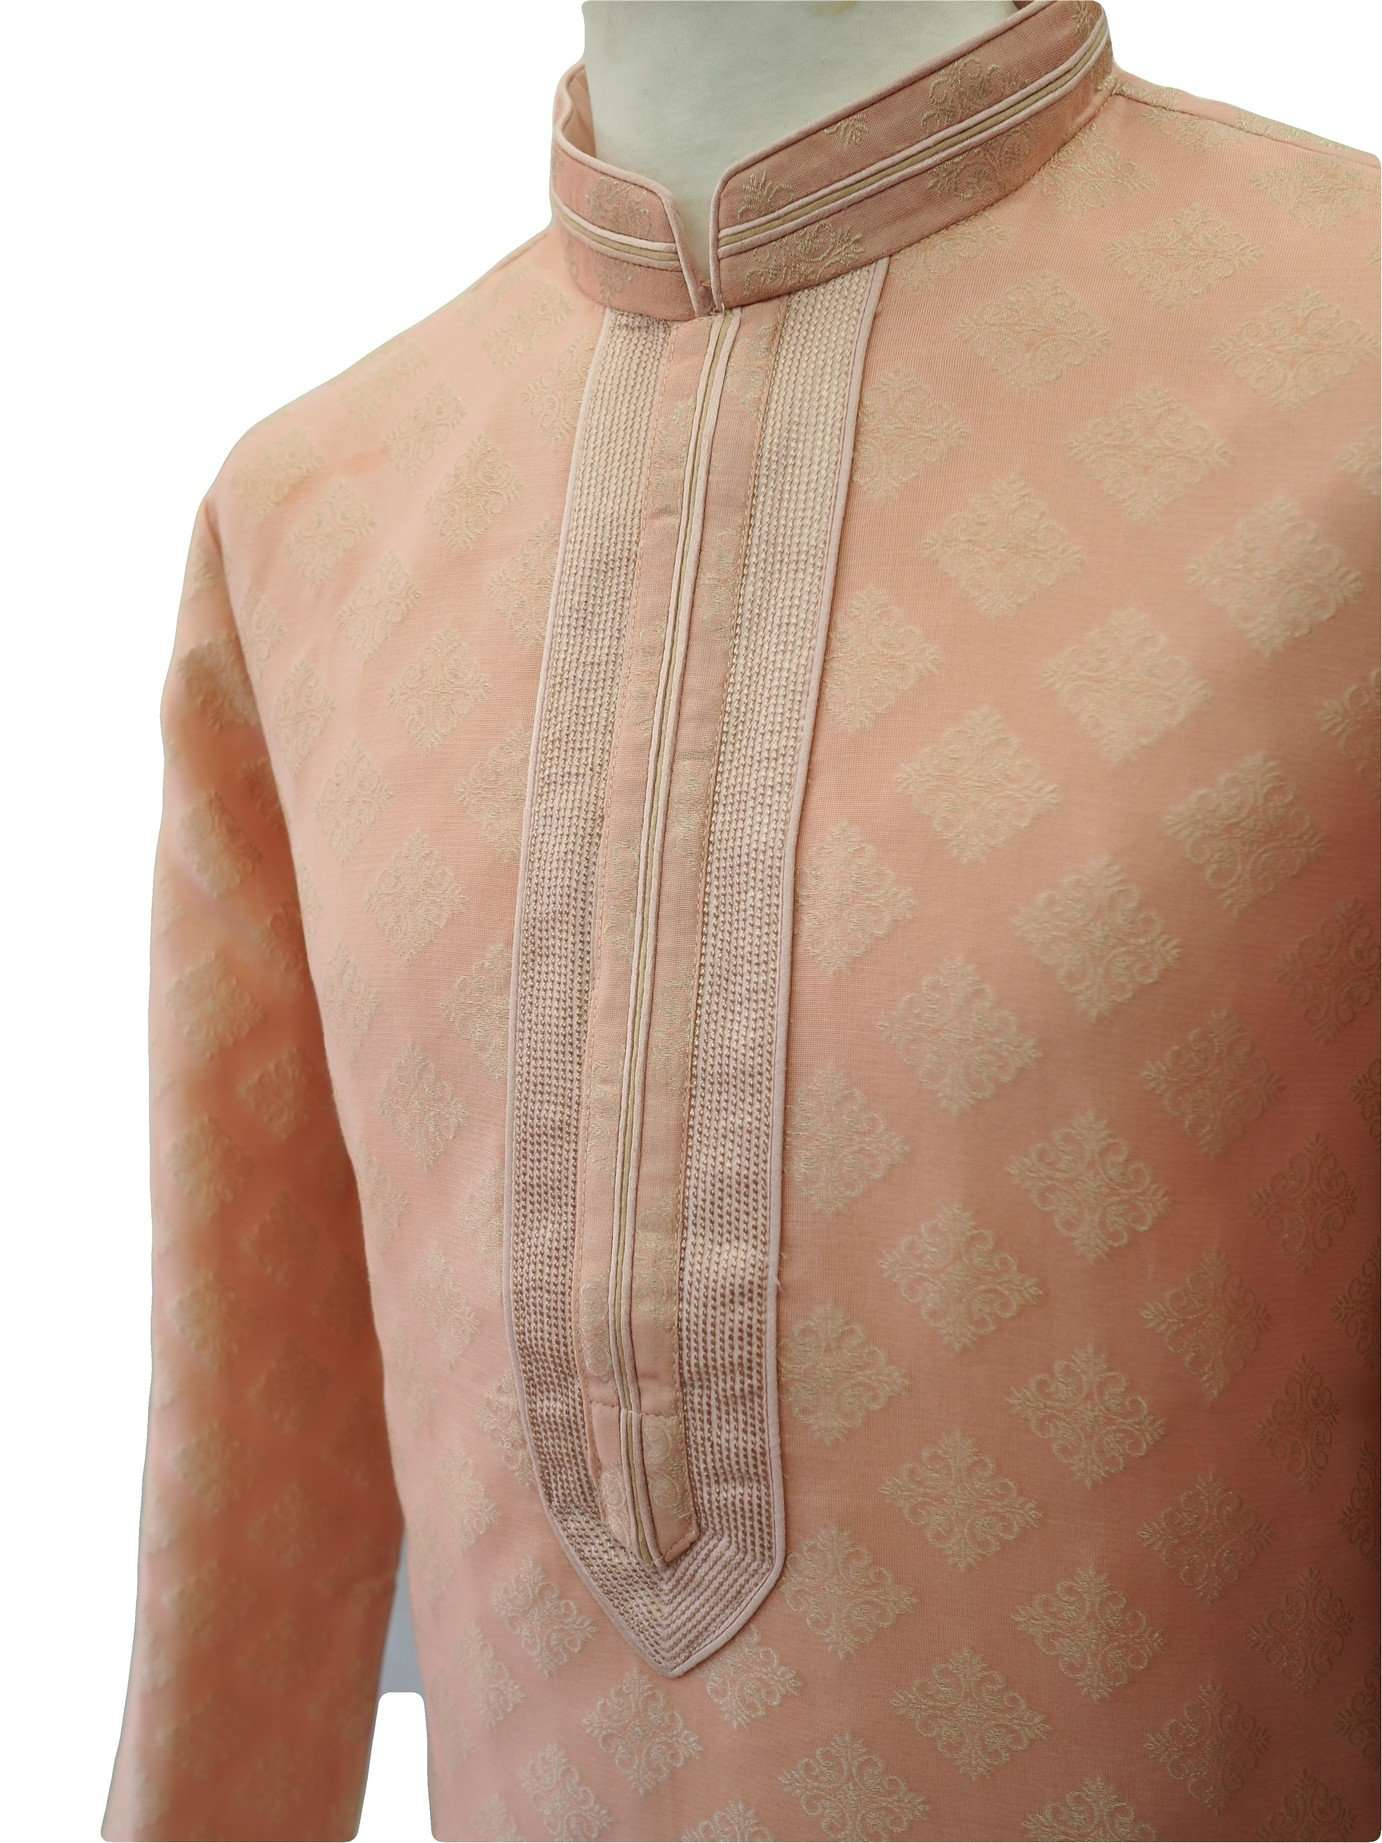 Prachy Creations - Benarasi Handloom Mens Kurta set - Pink - Bollywood, Weddings, Fancy Dress - SNC8633TR 1018 - Prachy Creations